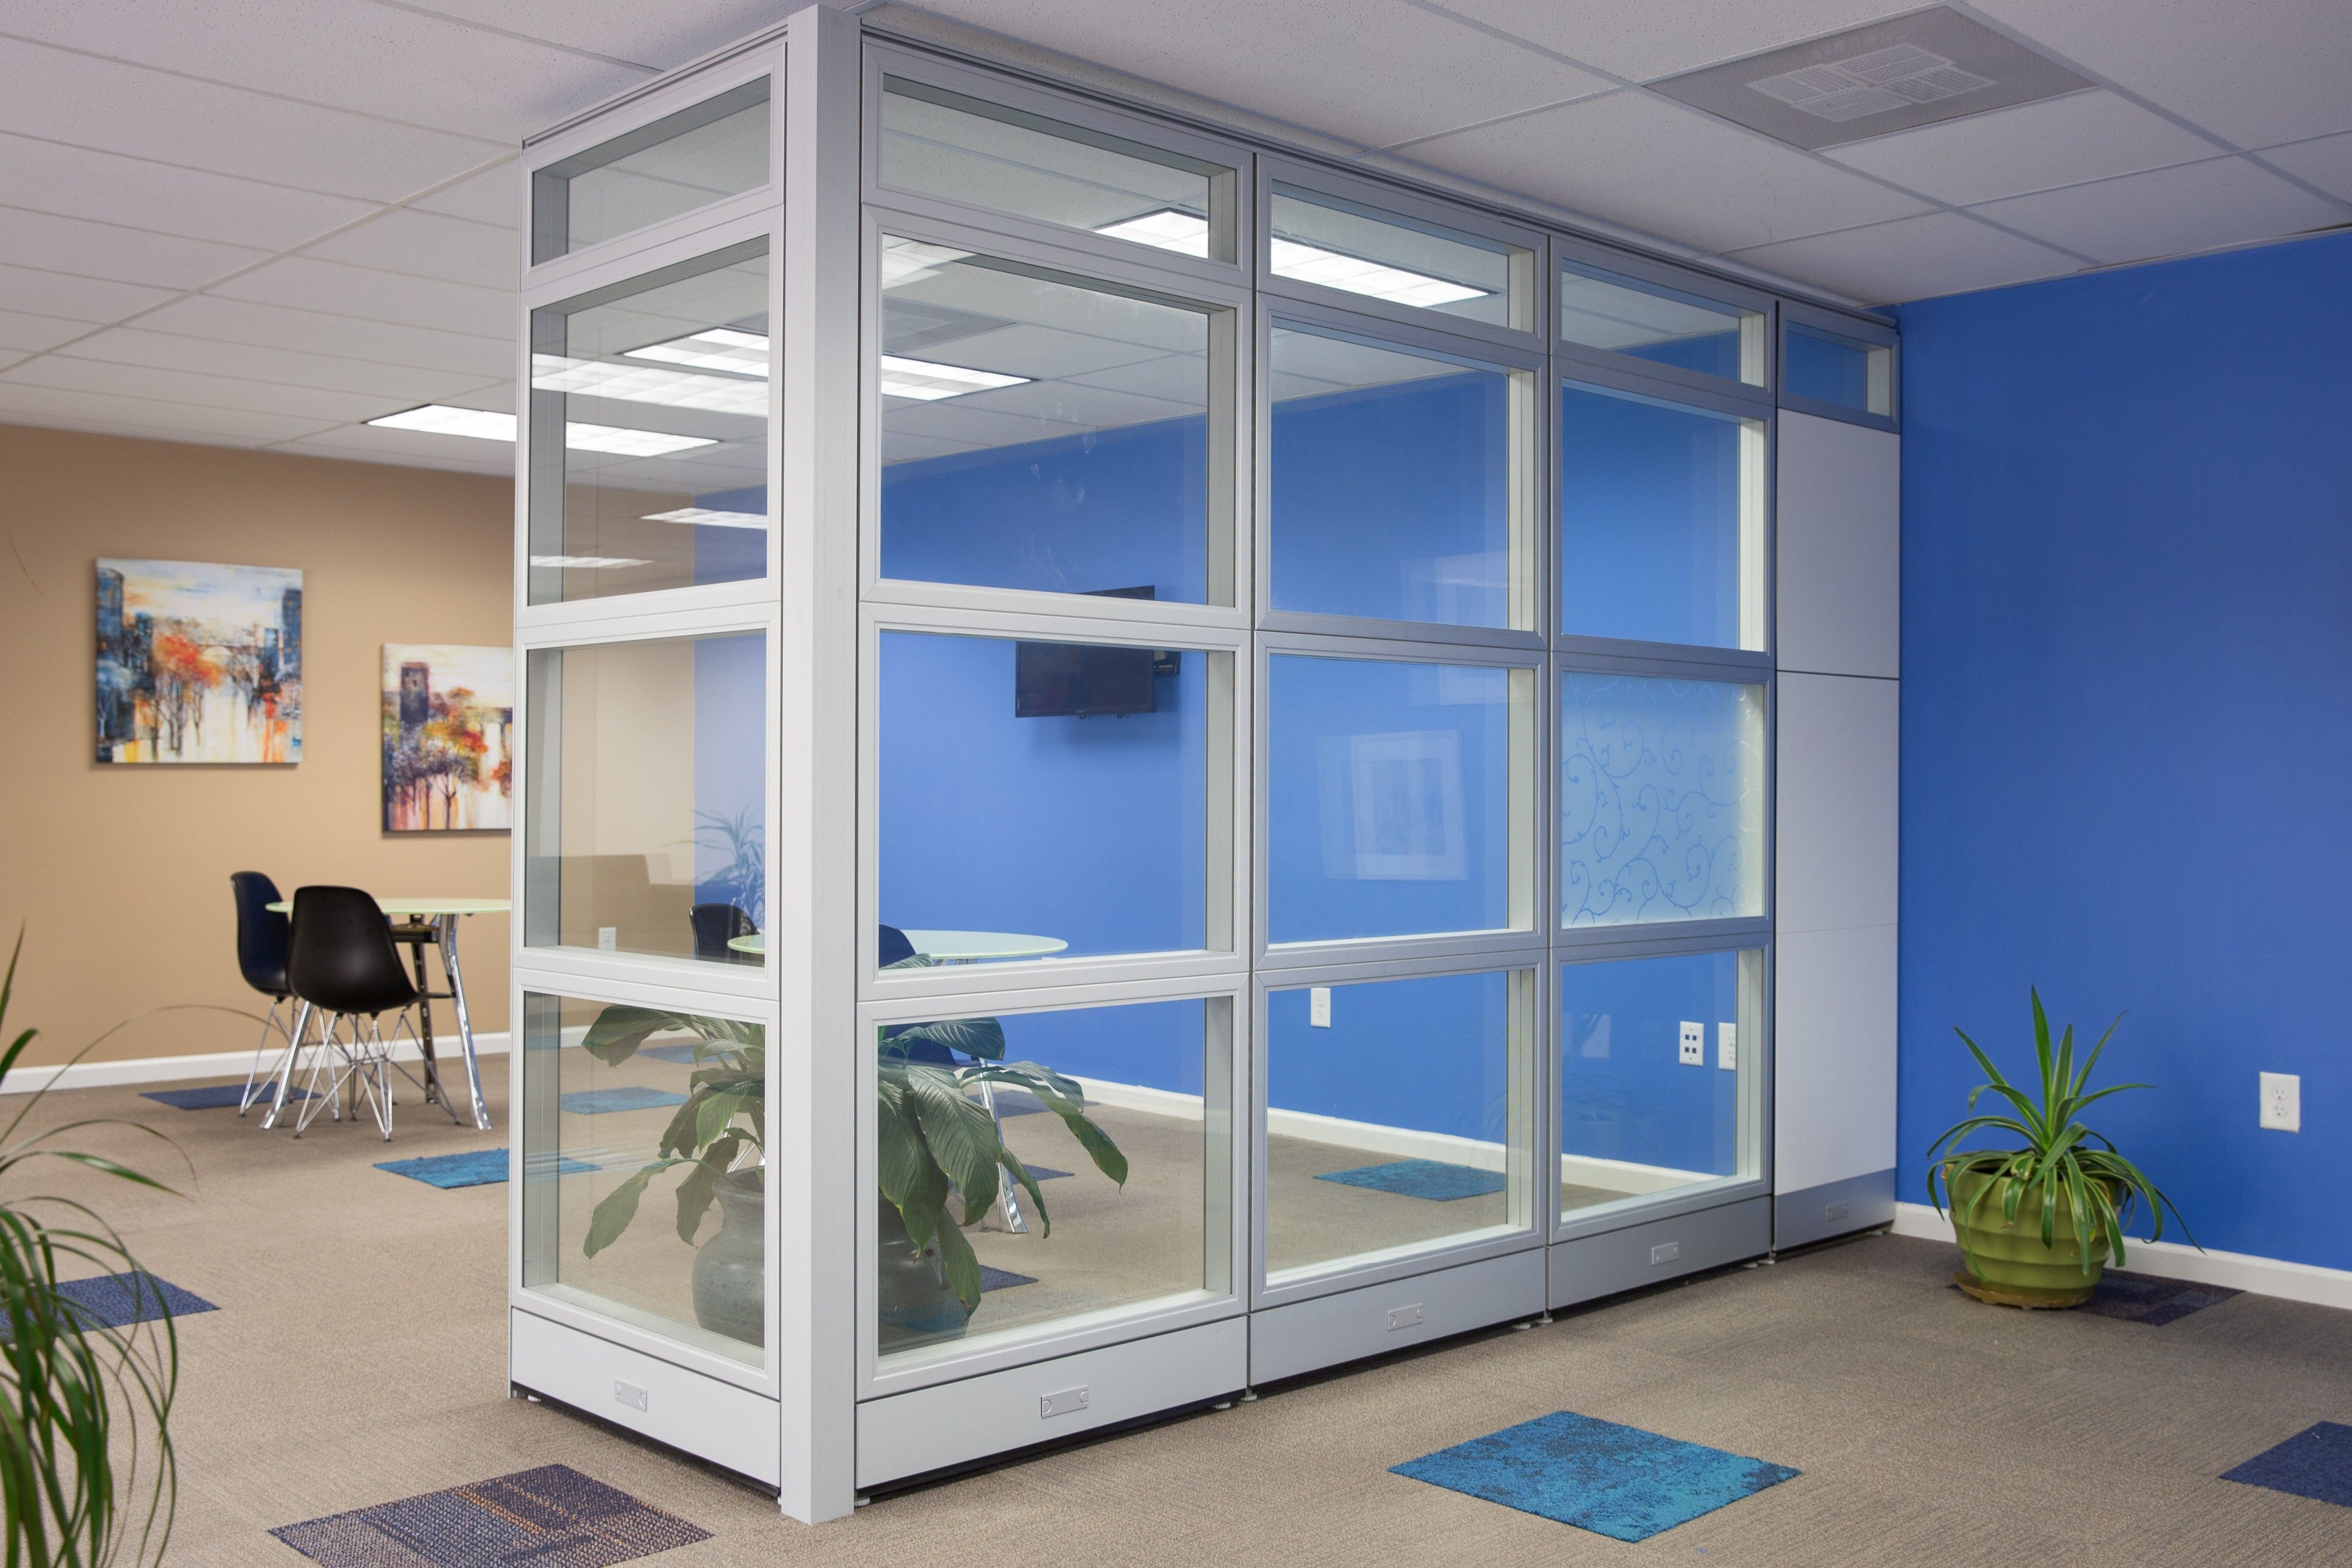 Modular Glass Room Divider Glass Office Partitions Glass Wall